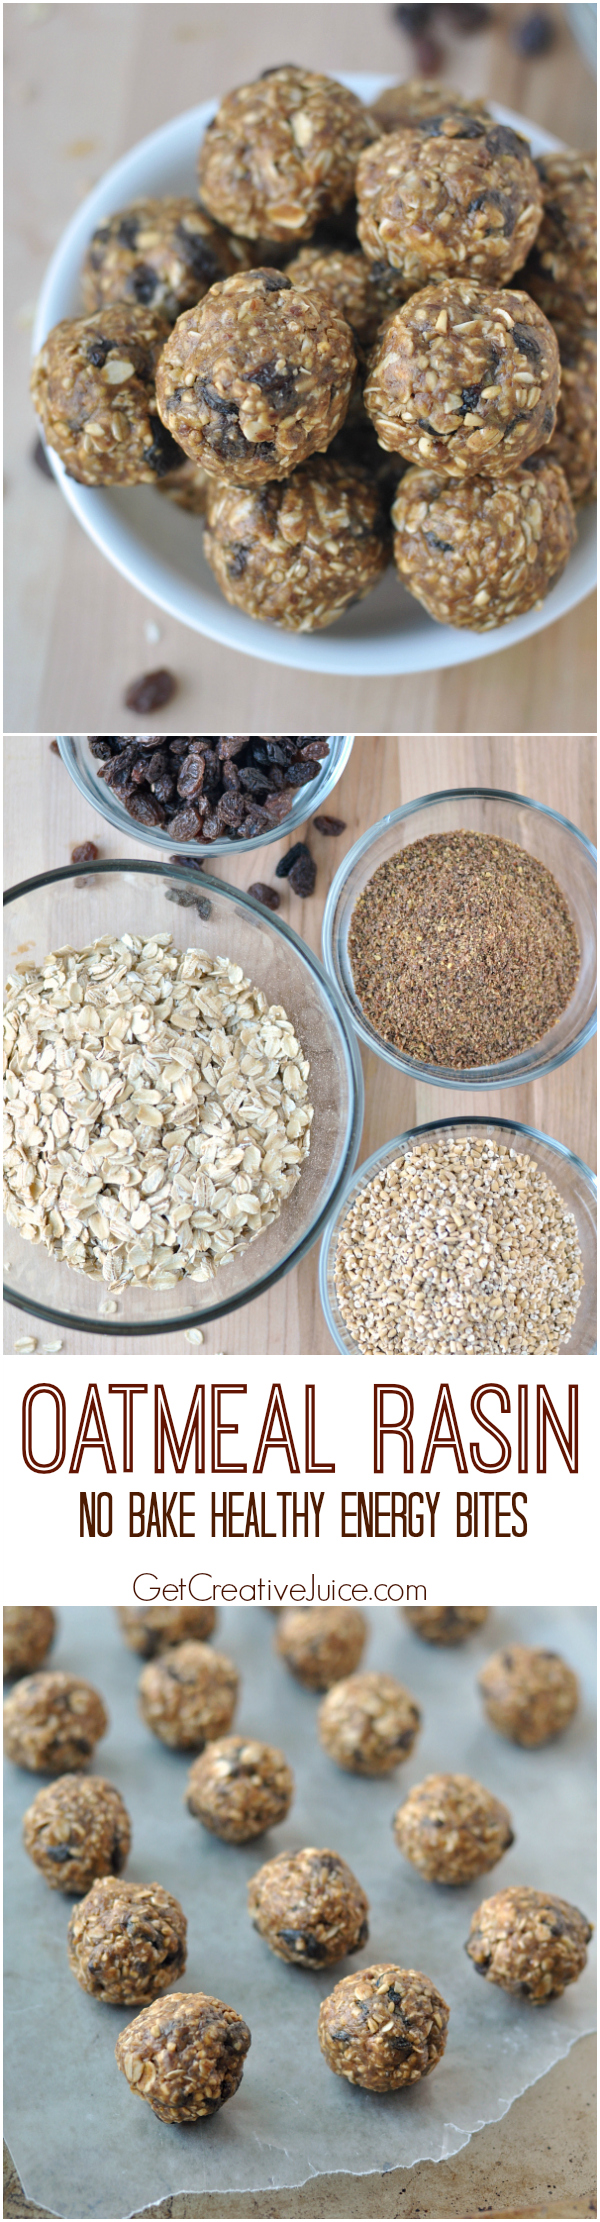 Oatmeal raisin no bake healthy energy bite snacks